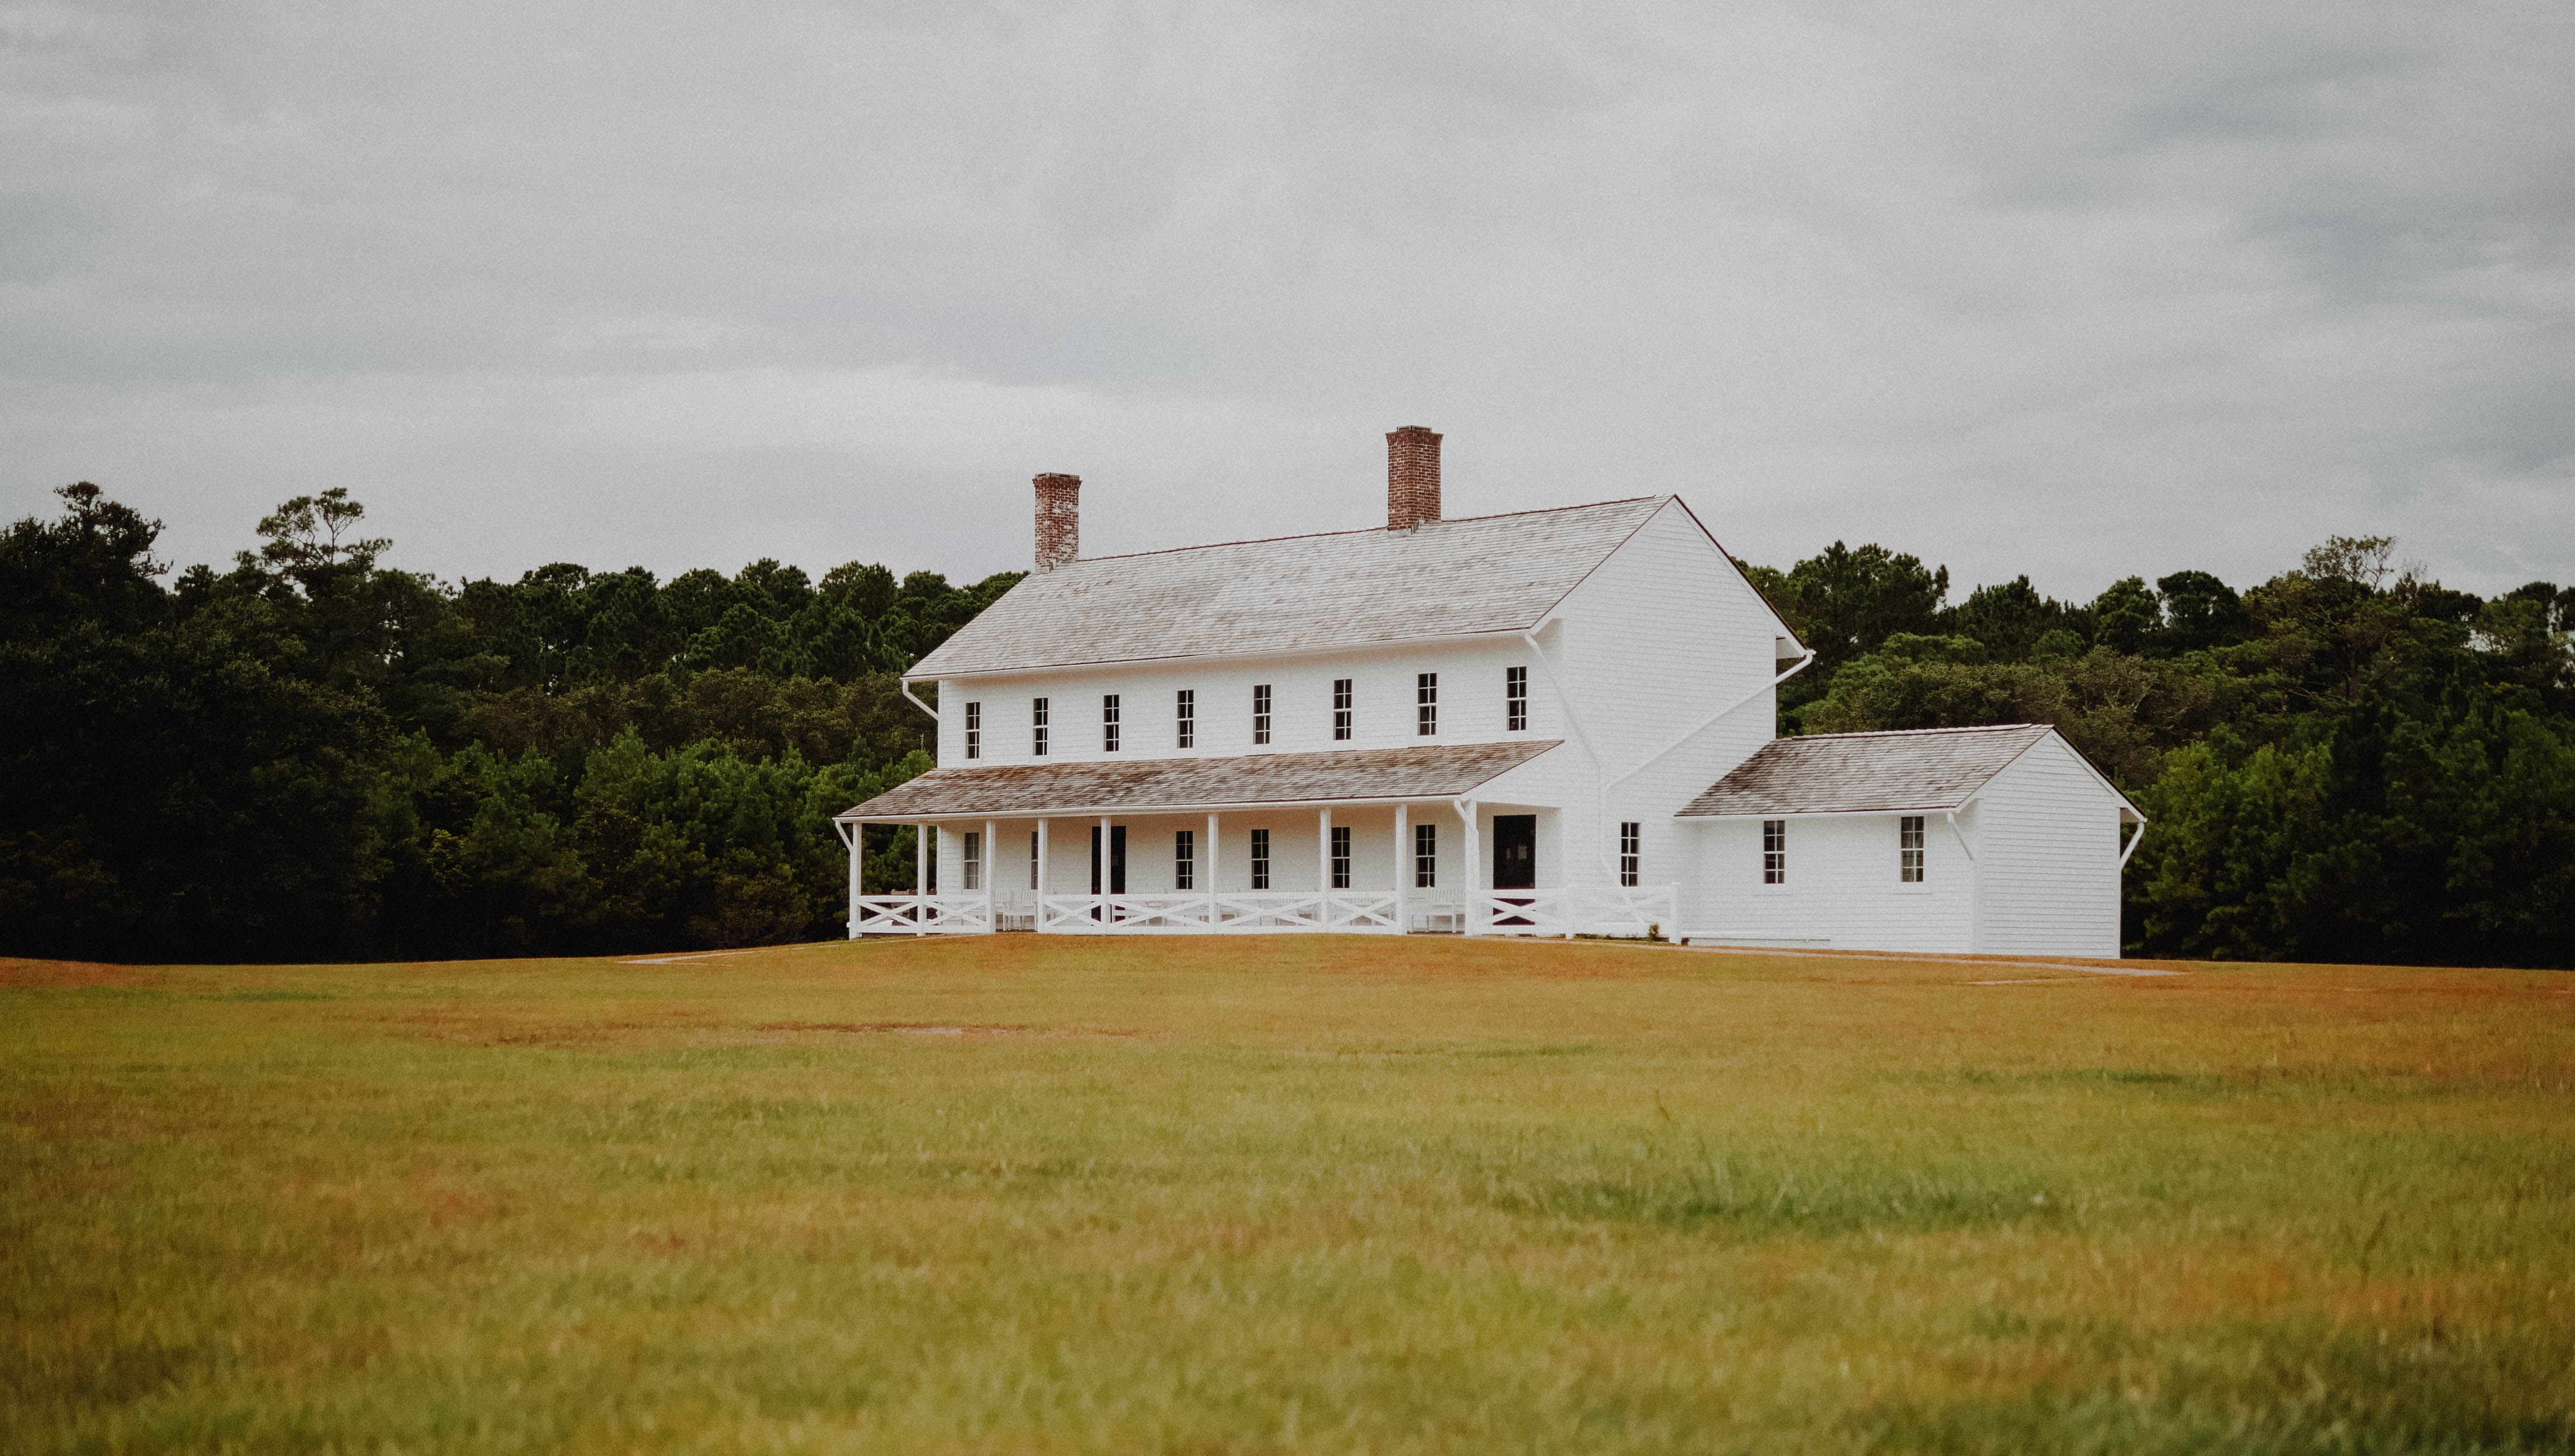 white and brown house on green grass field during daytime